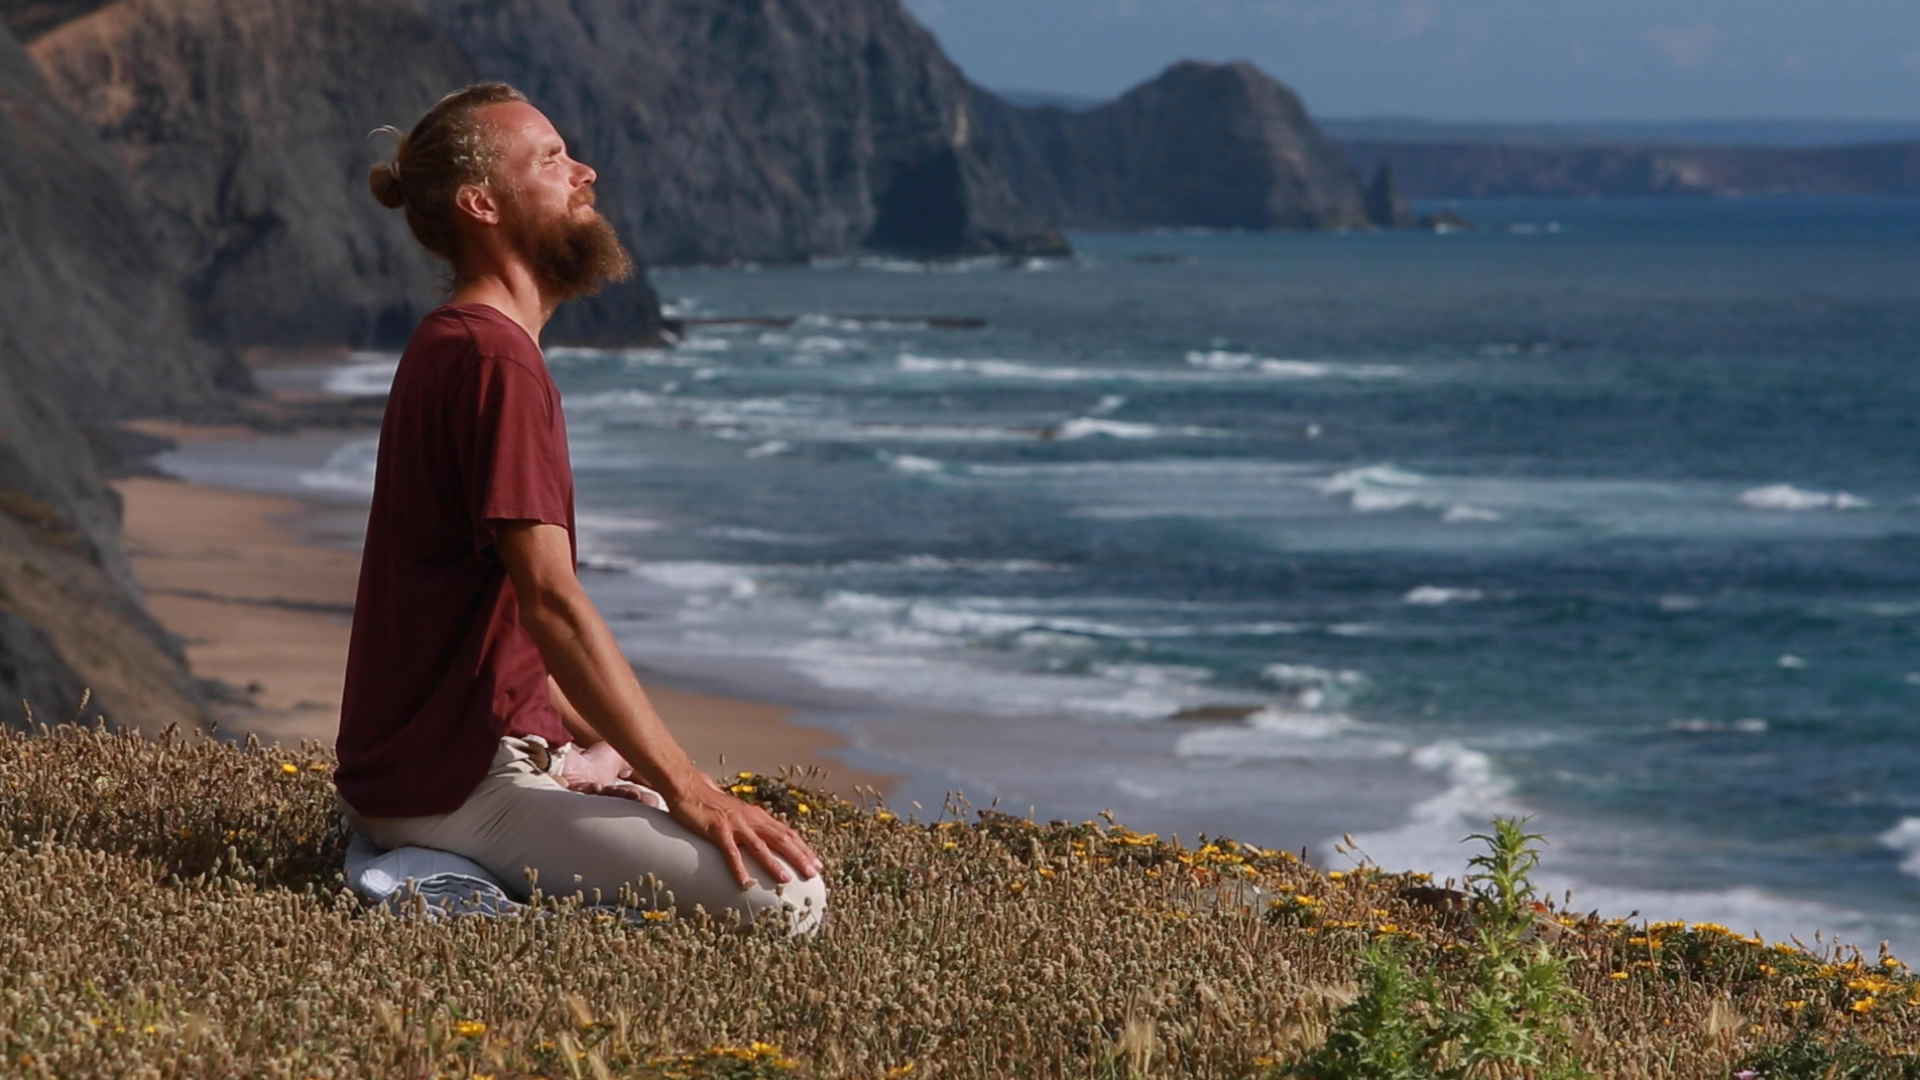 sitting%20on%20cliff%20meditation%20looking%20up0